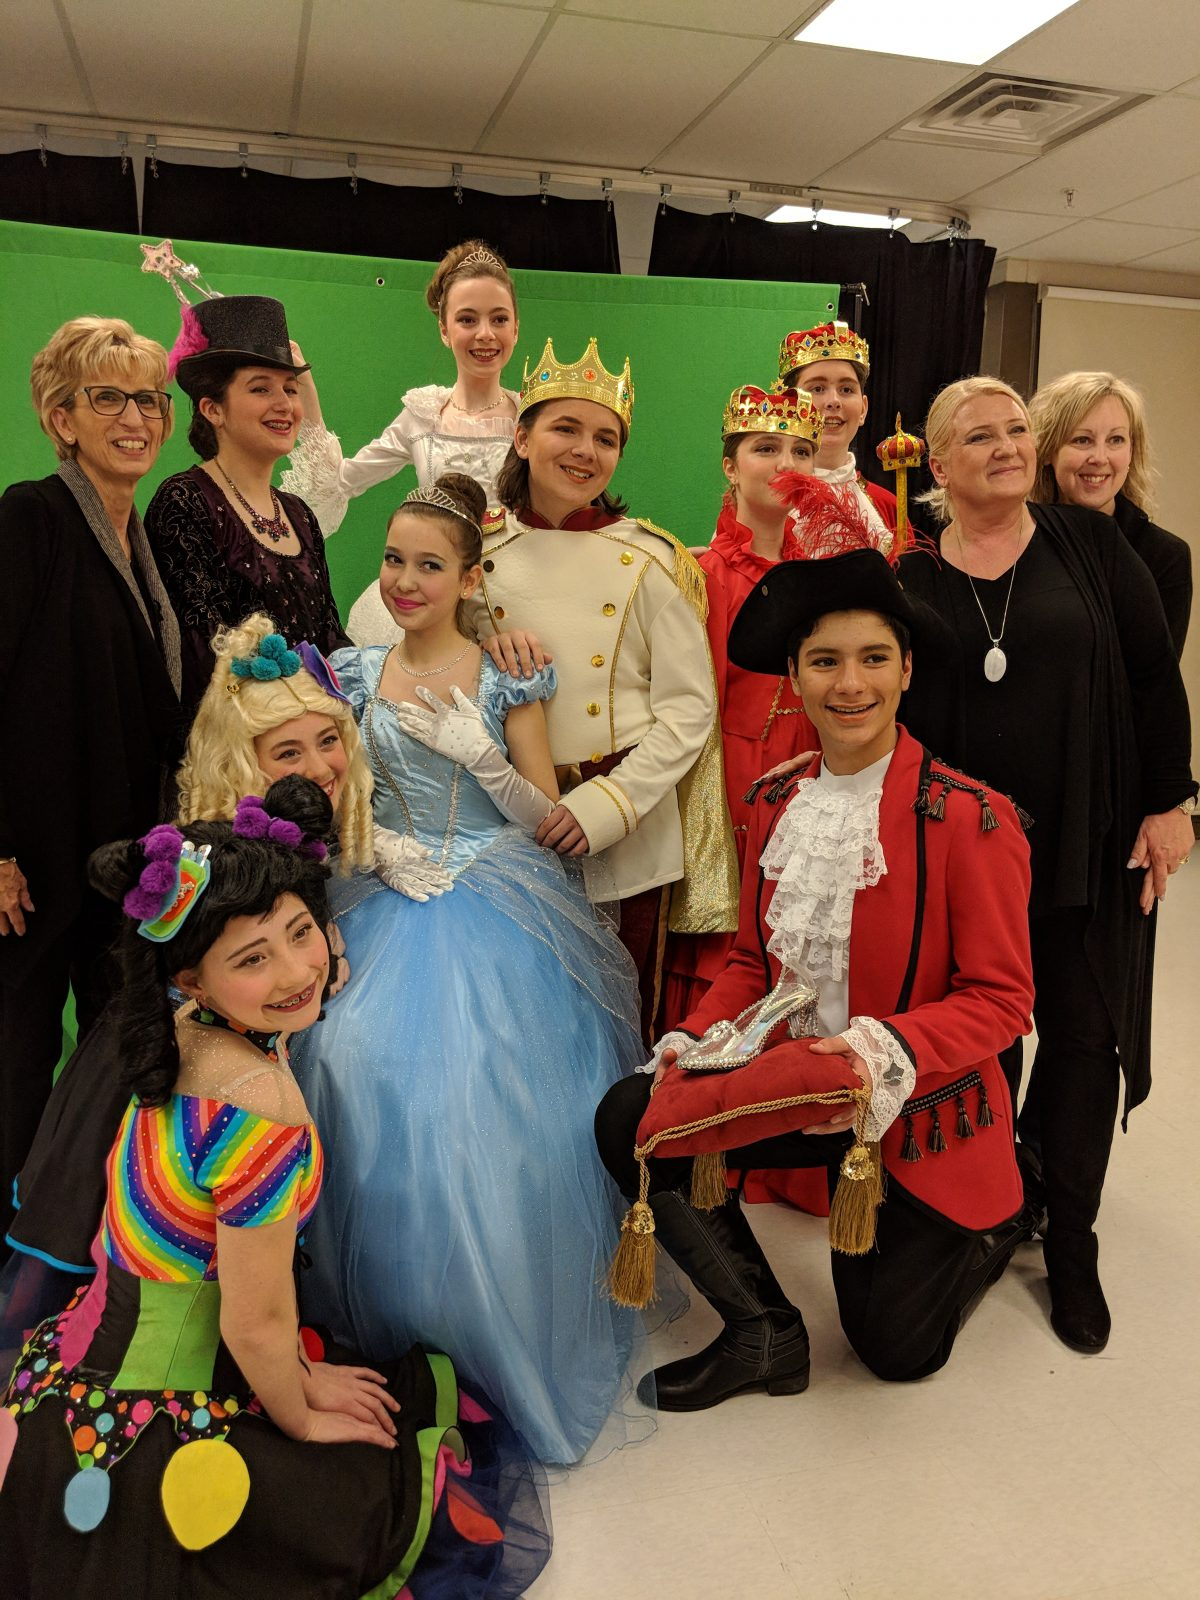 St. Michael Catholic Academy's Cinderella Jr. was a great success